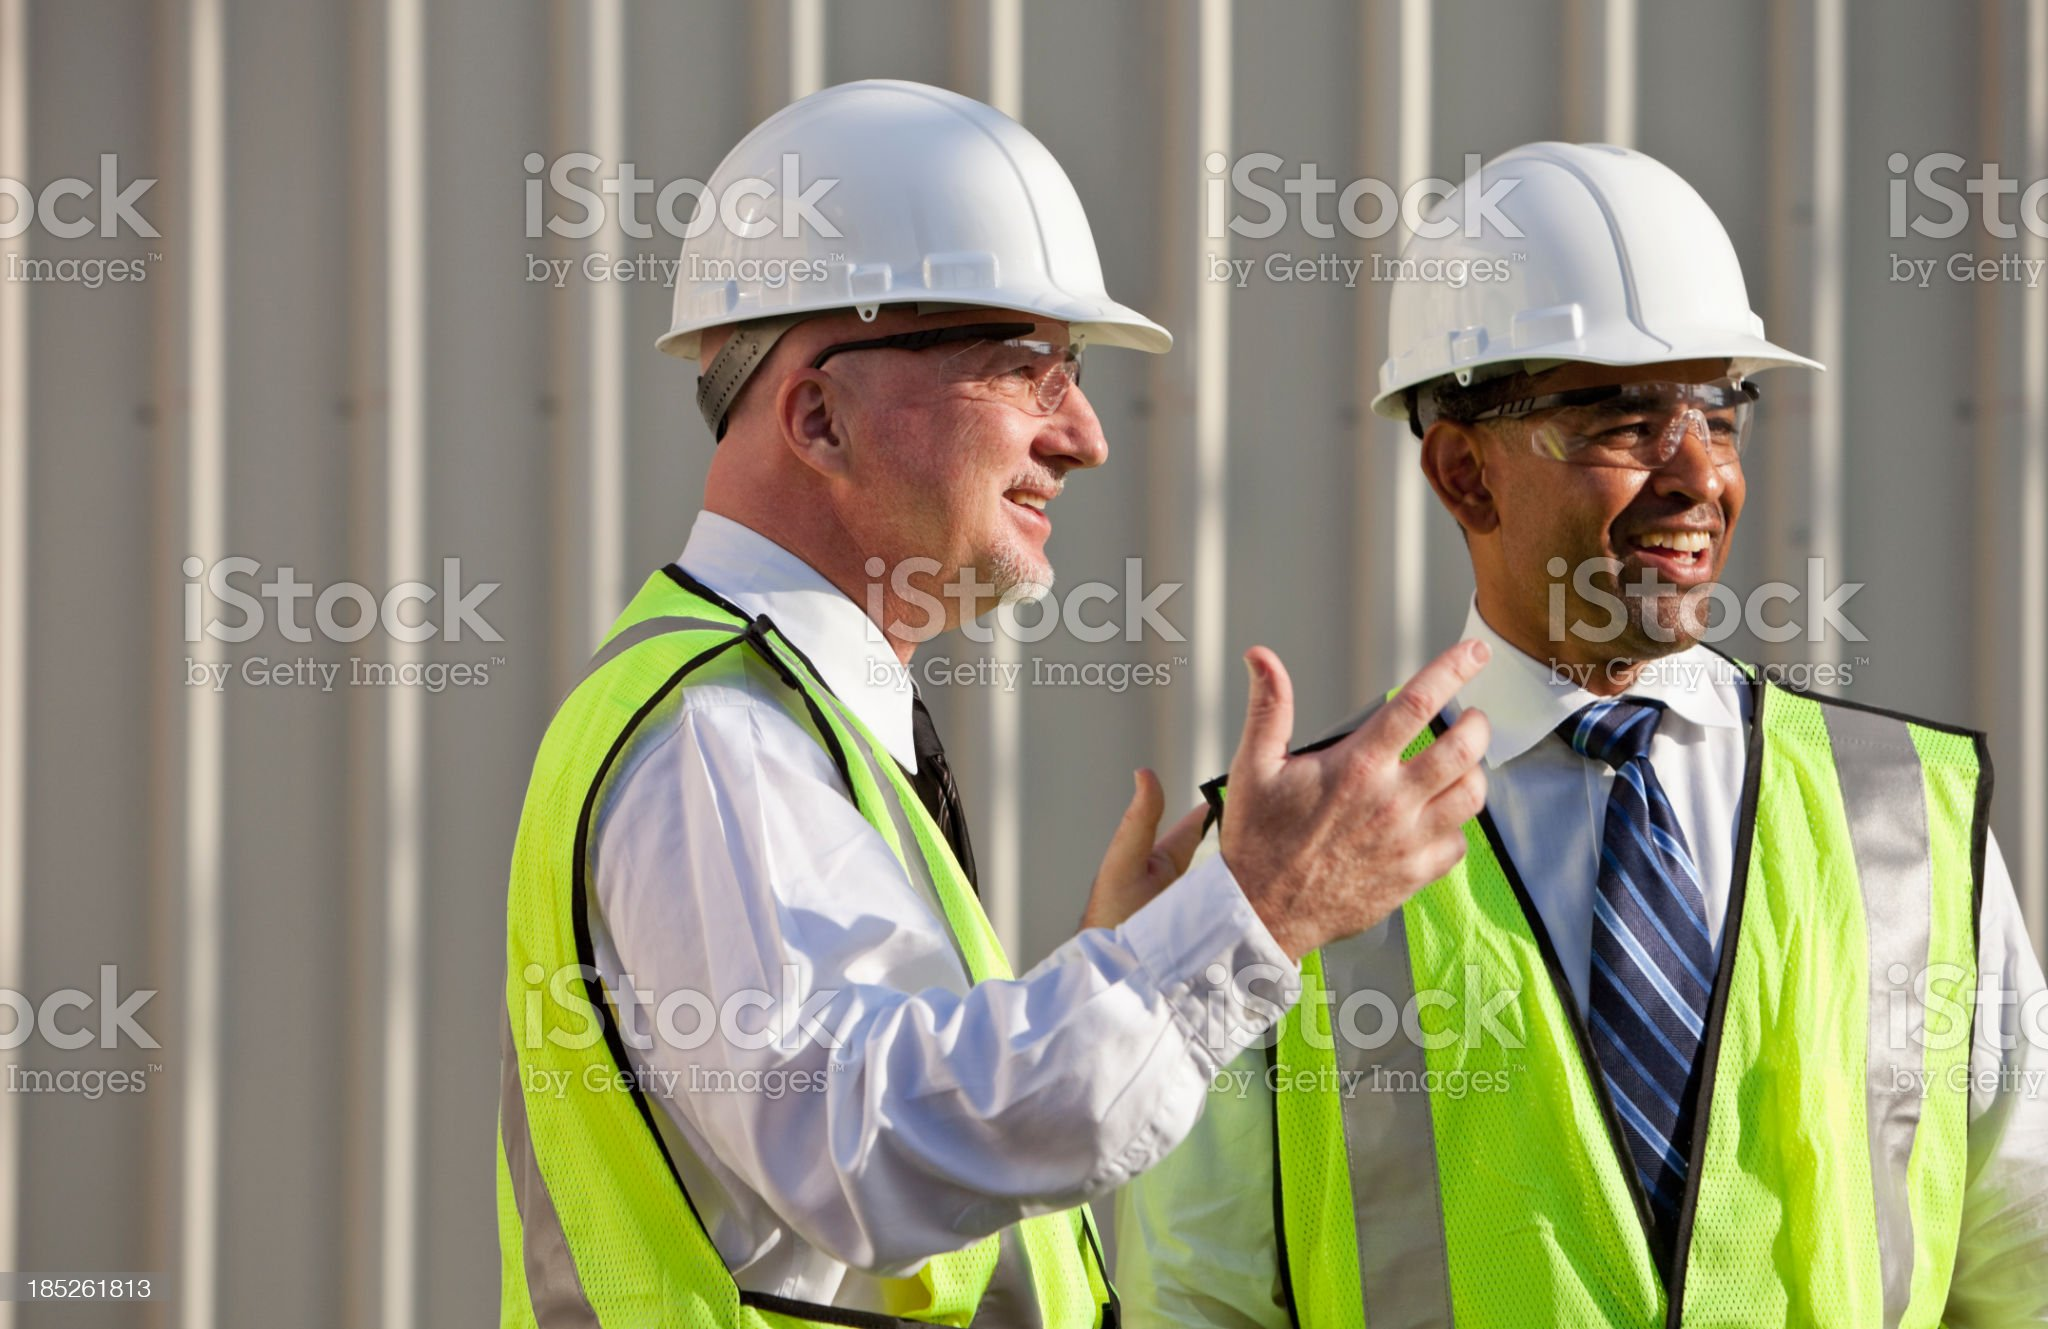 Engineers wearing safety vests having conversation royalty-free stock photo